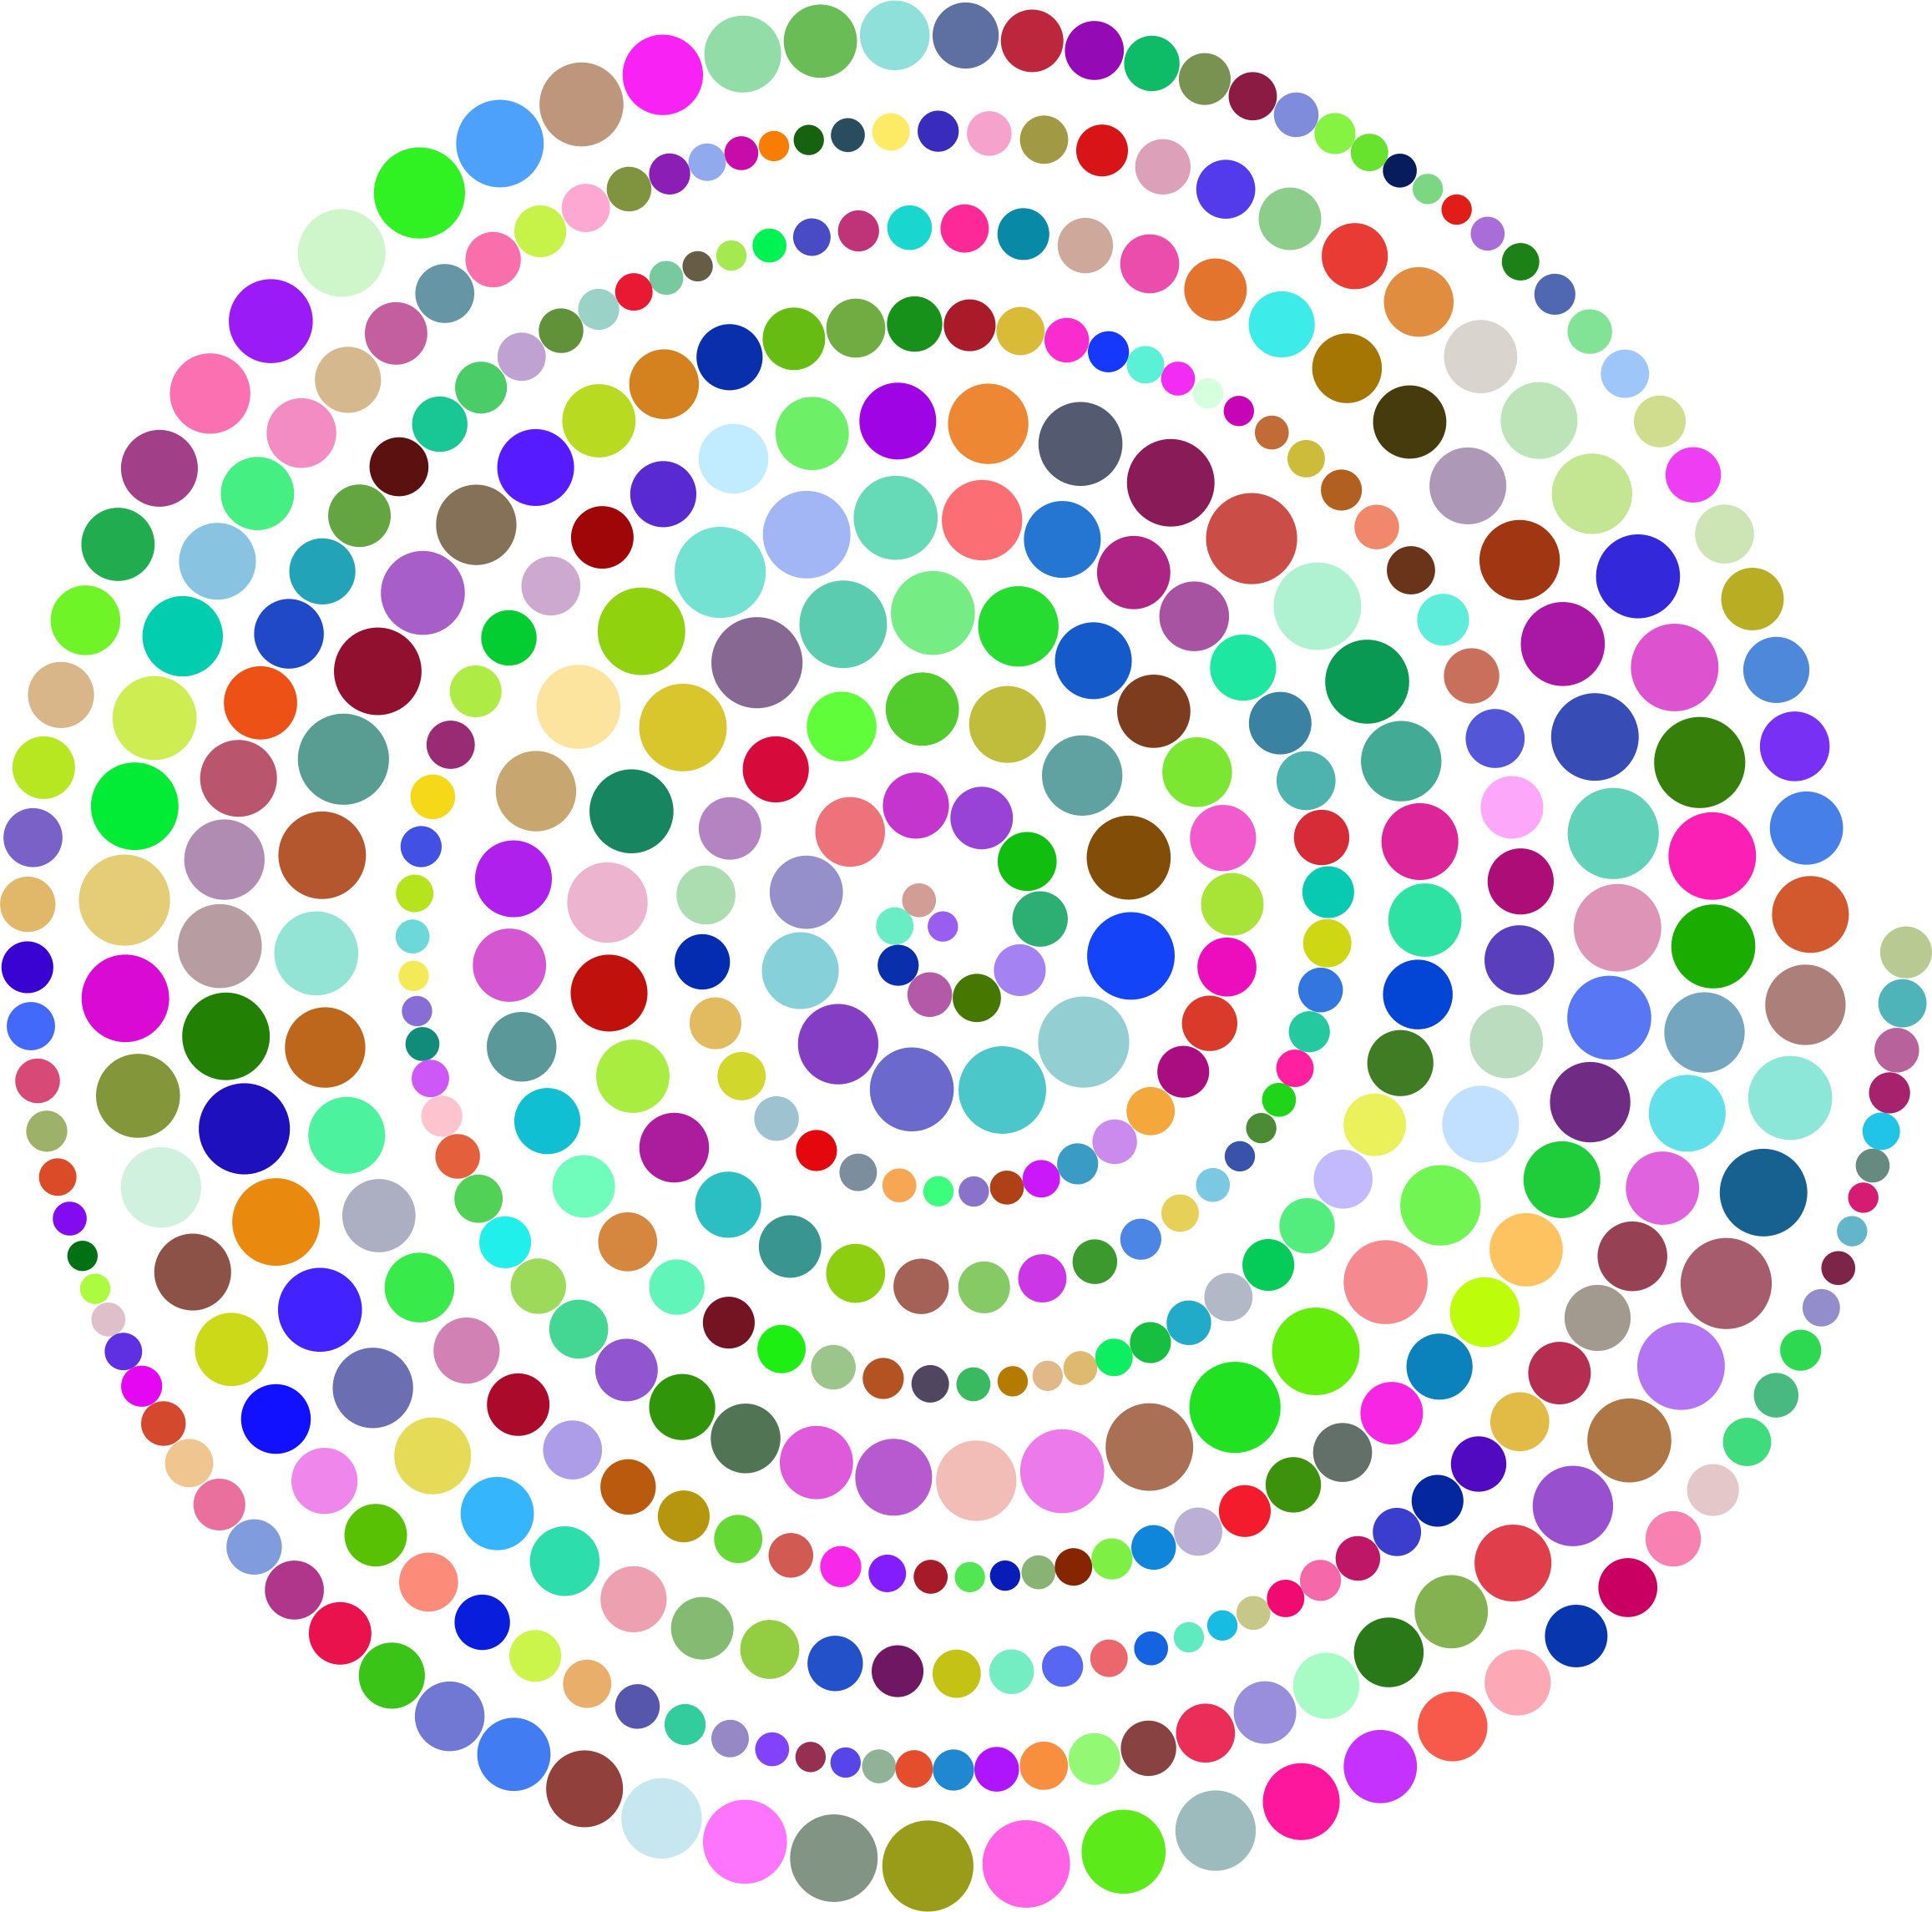 Circles Spiral Prismatic by GDJ